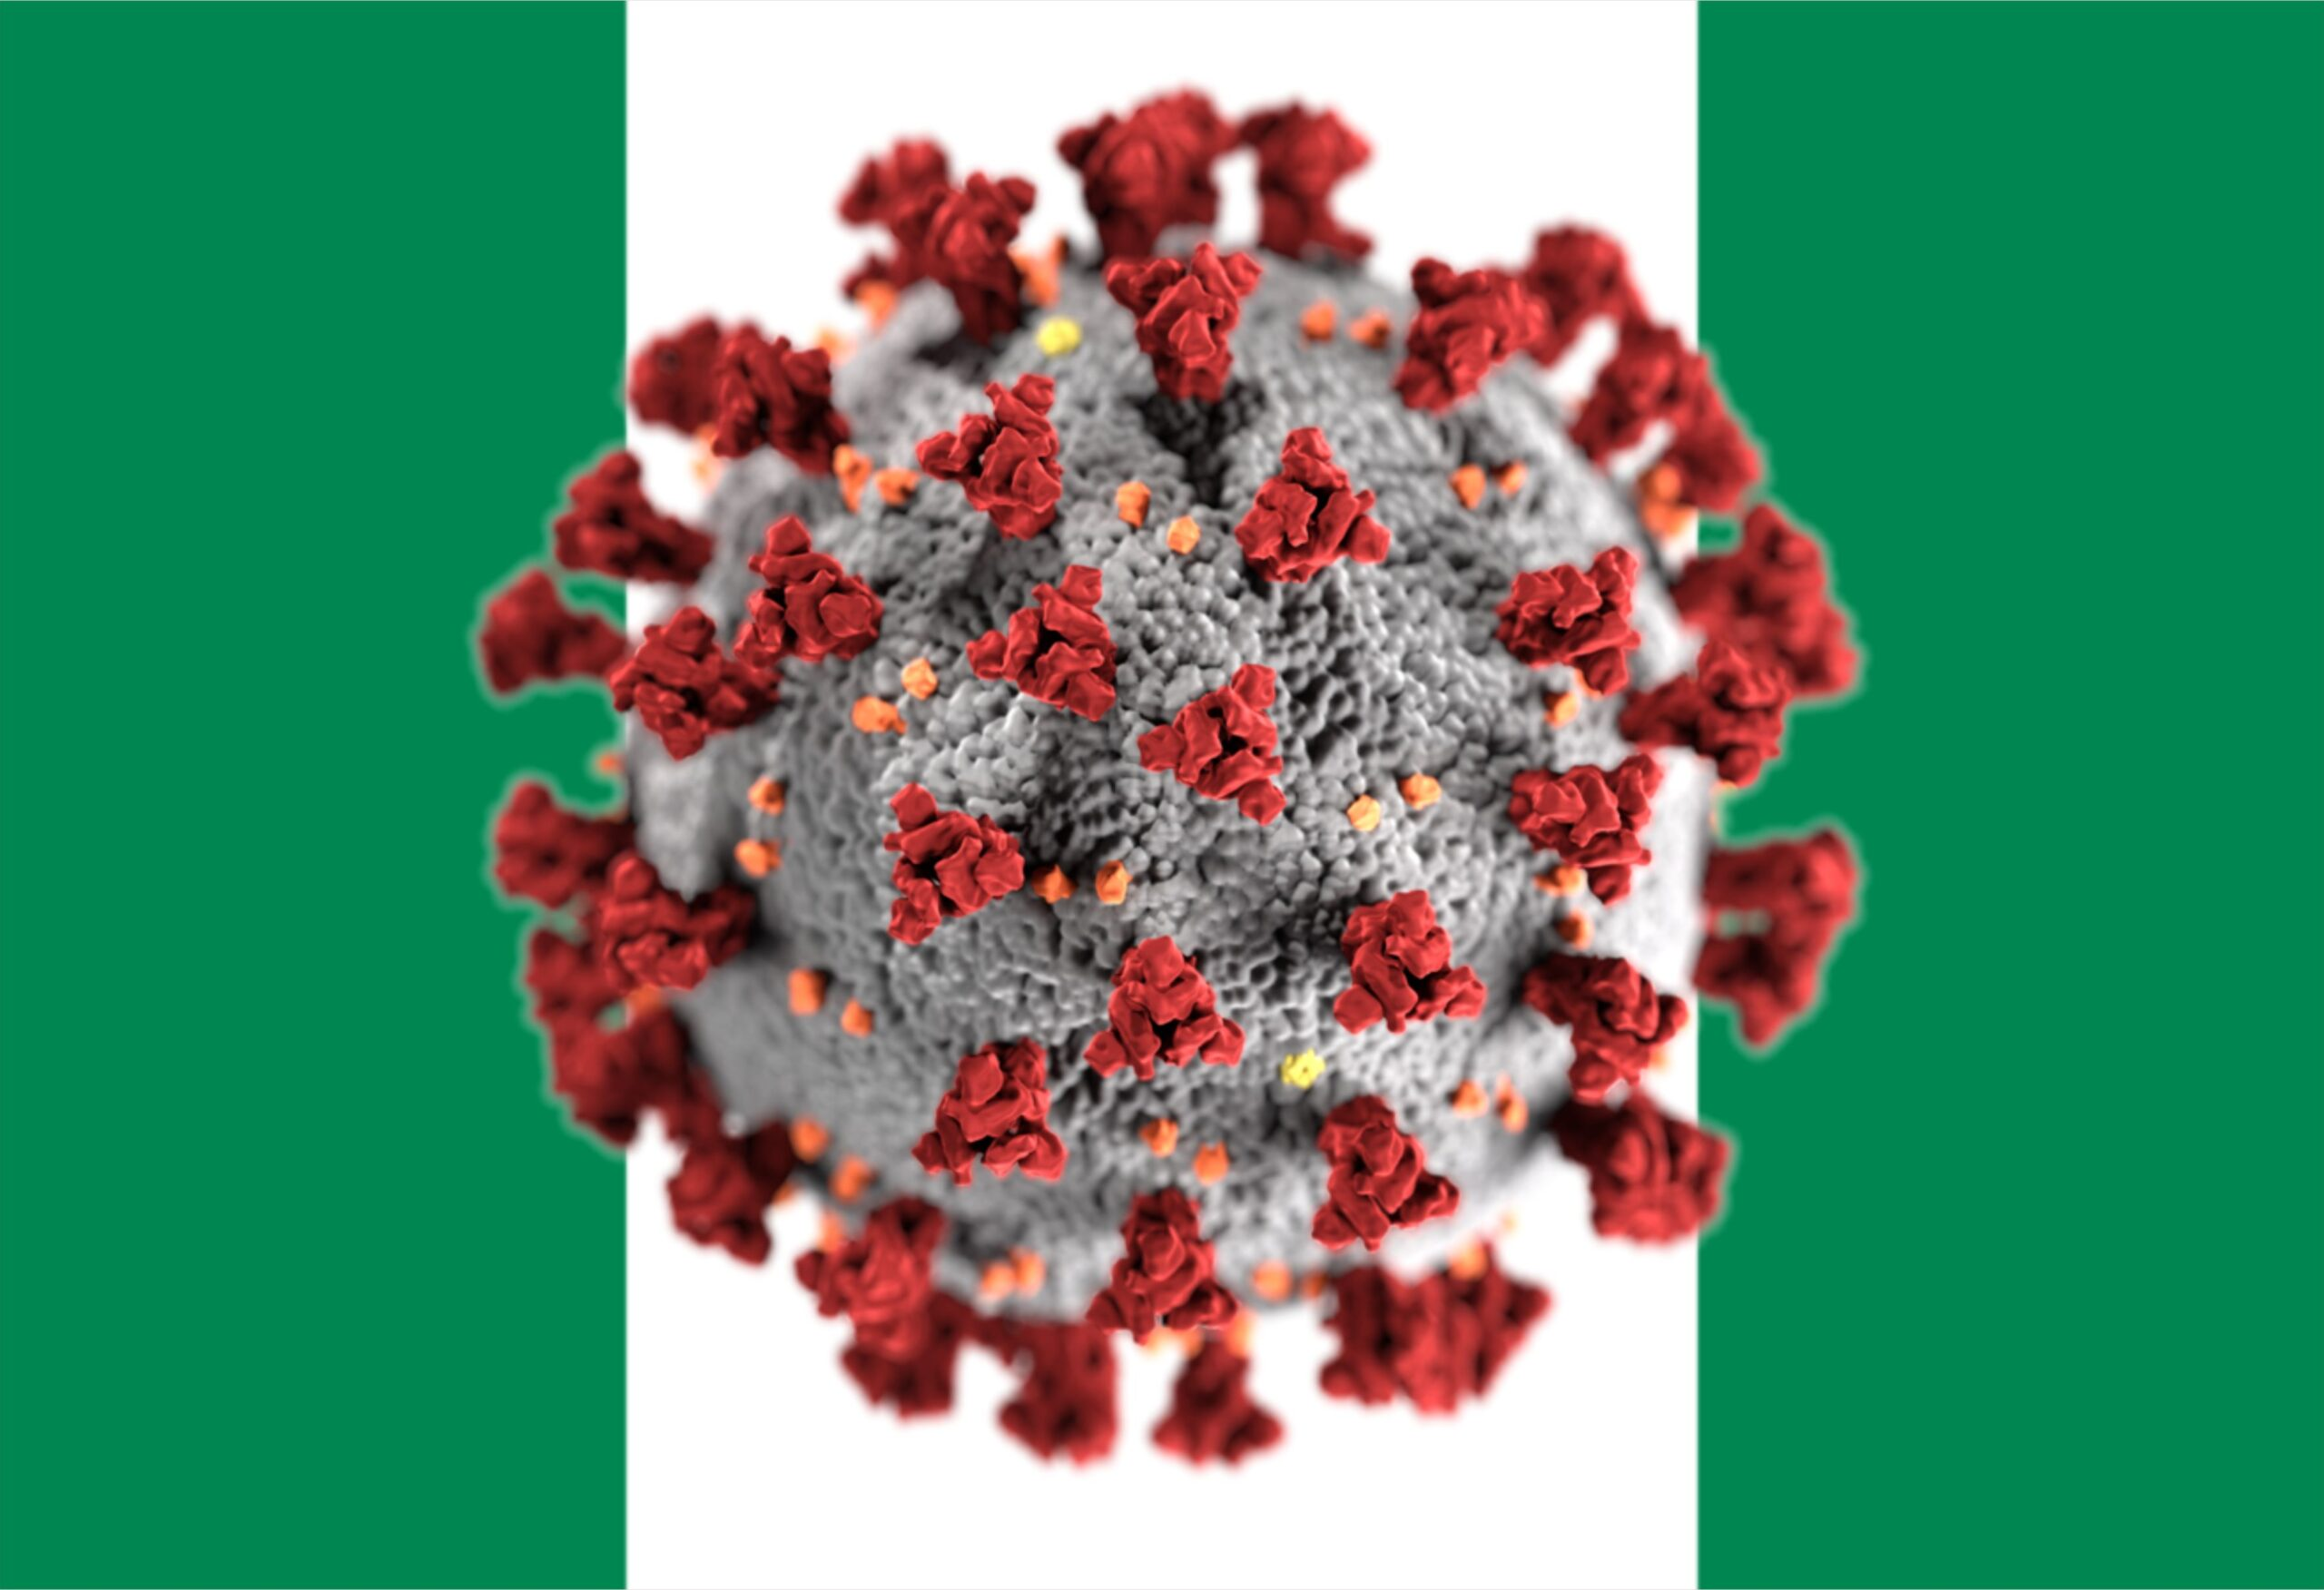 no coronavirus in Nigeria